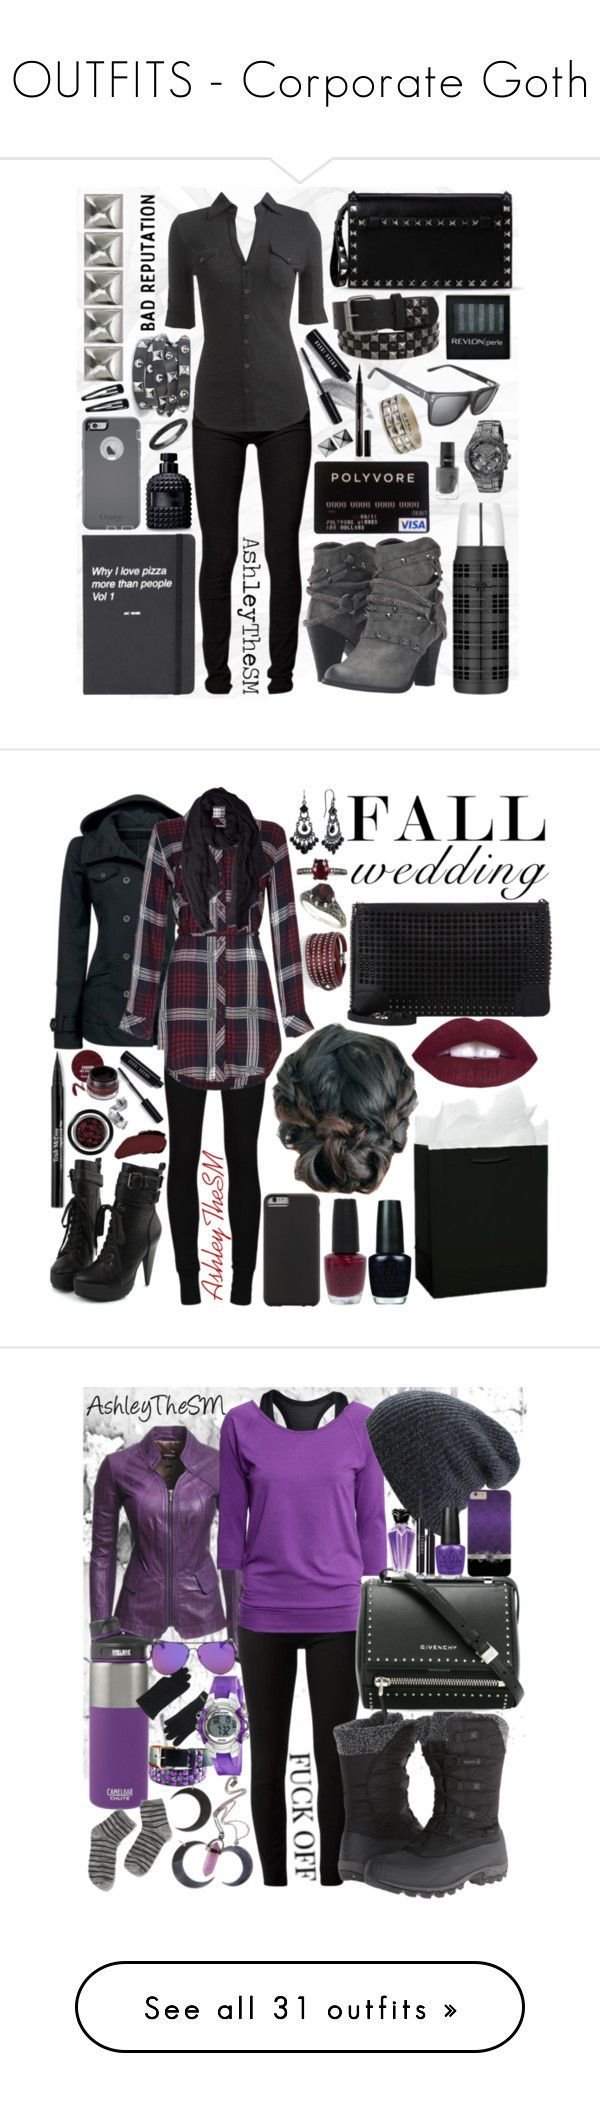 """""""OUTFITS - Corporate Goth"""" by ashleythesm on Polyvore featuring Levi's, Bobbi Brown Cosmetics, Valentino, Arden B., Not Rated, Derek Cardigan, Elizabeth Arden, OtterBox, Revlon and GUESS"""